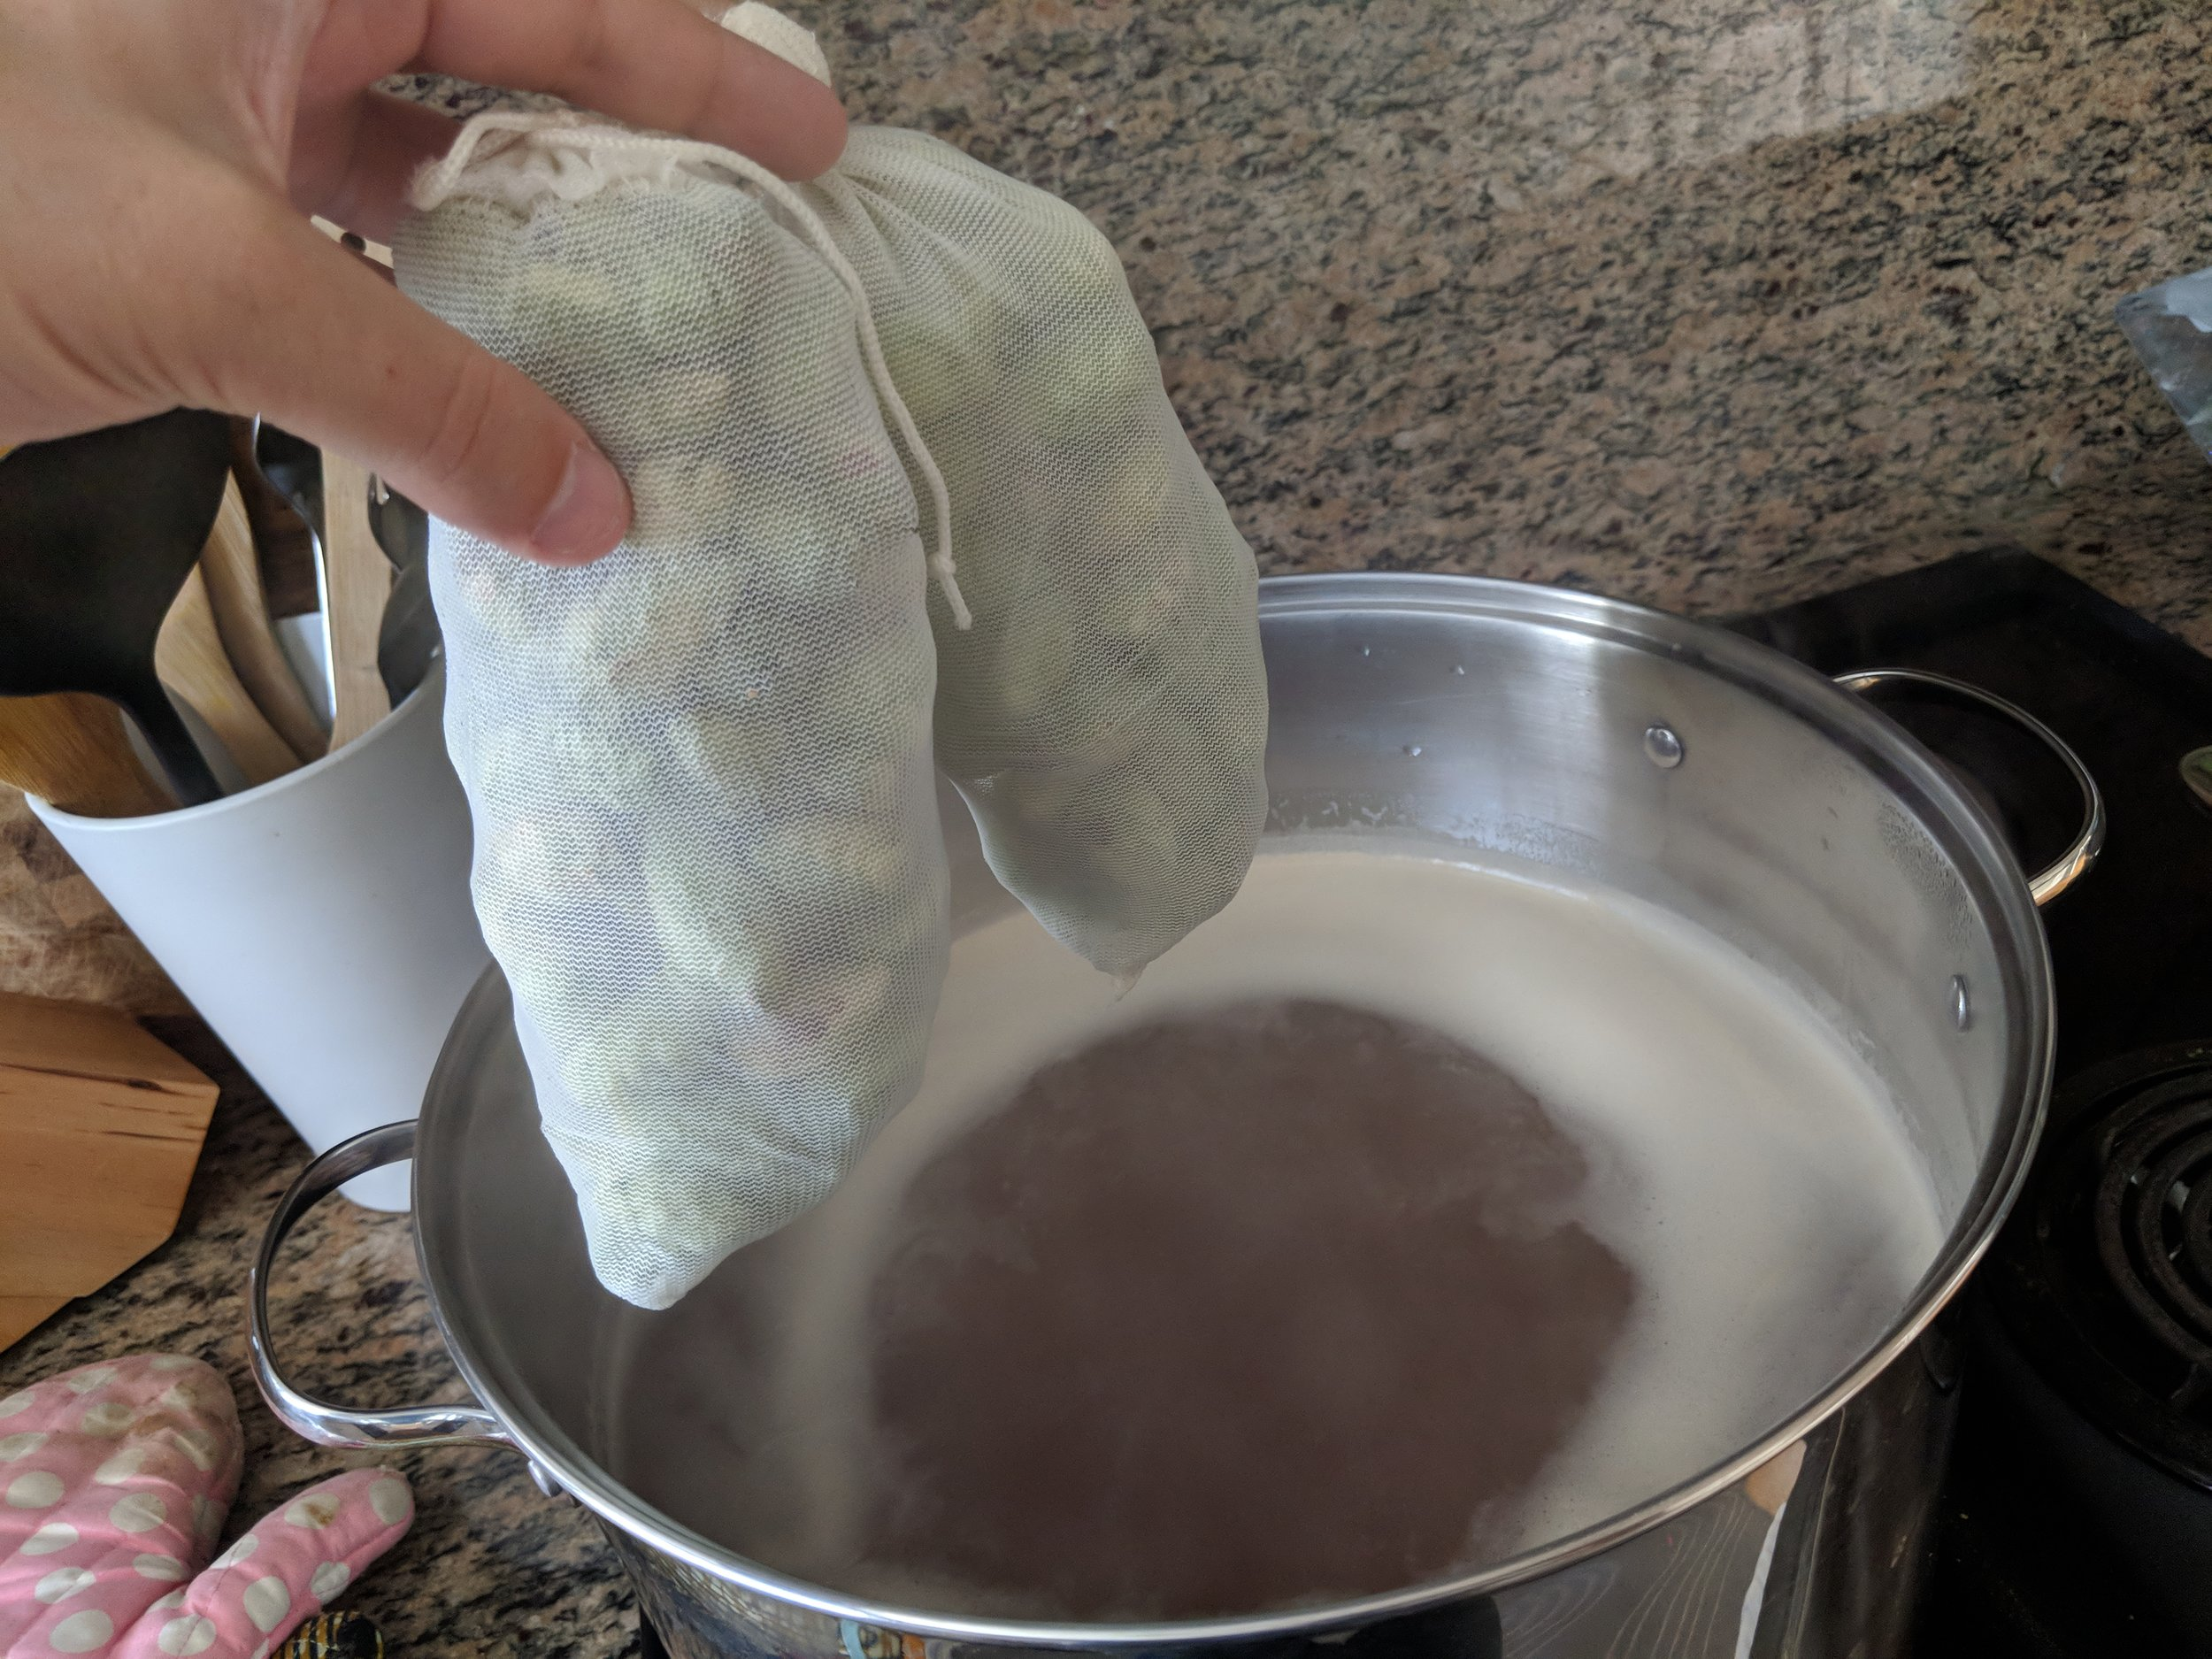 Add hops. These mesh bags aren't necessary but make removing the grains/hops easy.